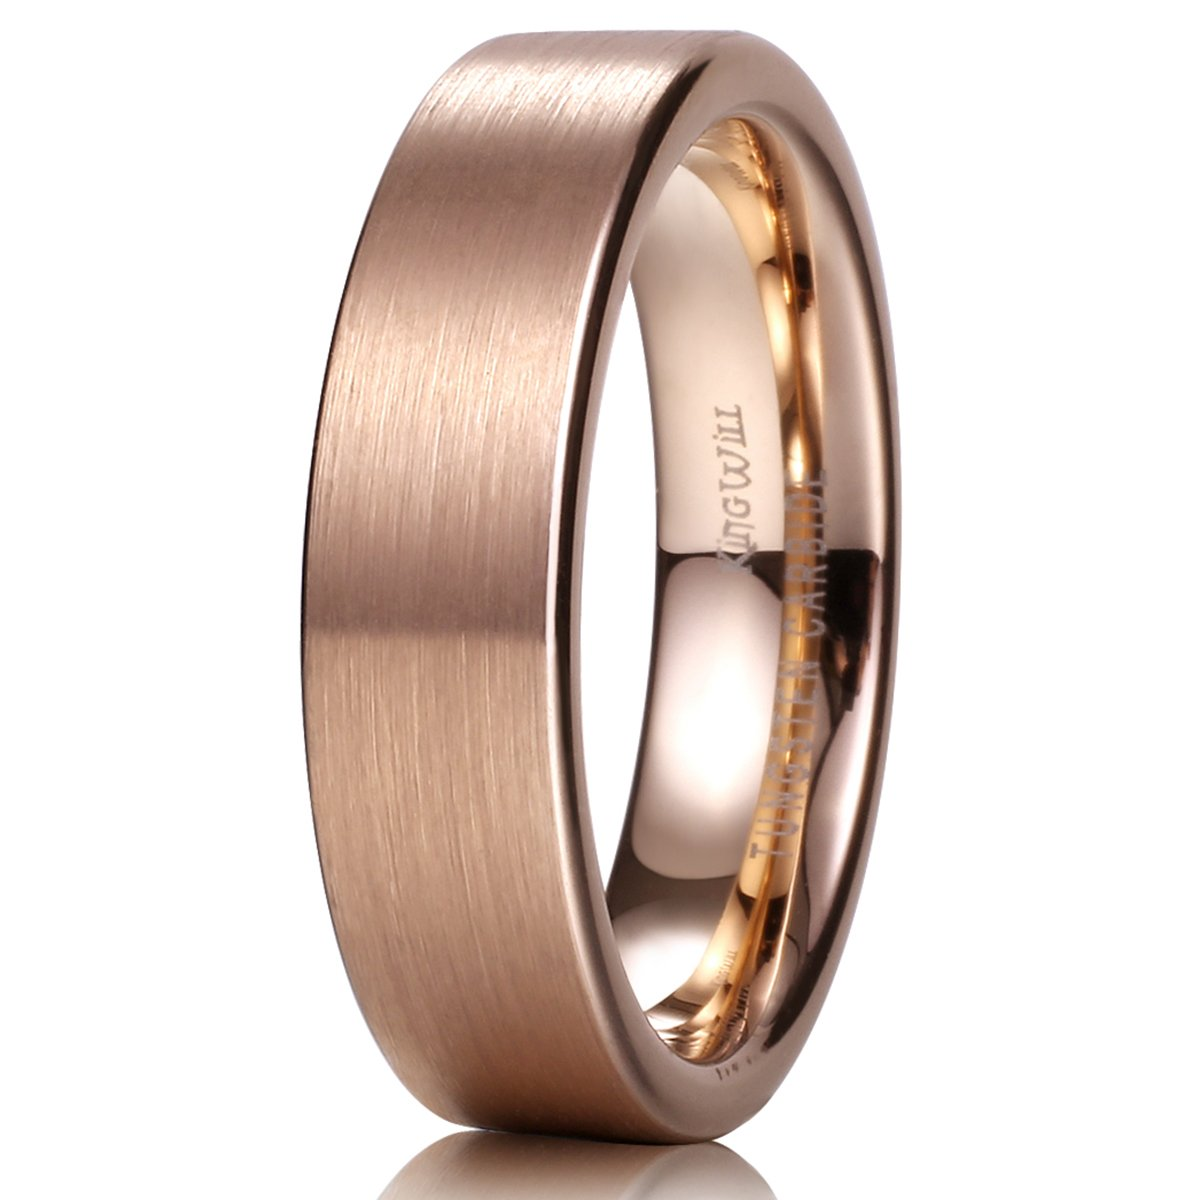 King Will Glory Unisex 6mm 18K Rose Gold Tungsten Carbide Wedding Band Ring Pipe Cut Brushed Finish9